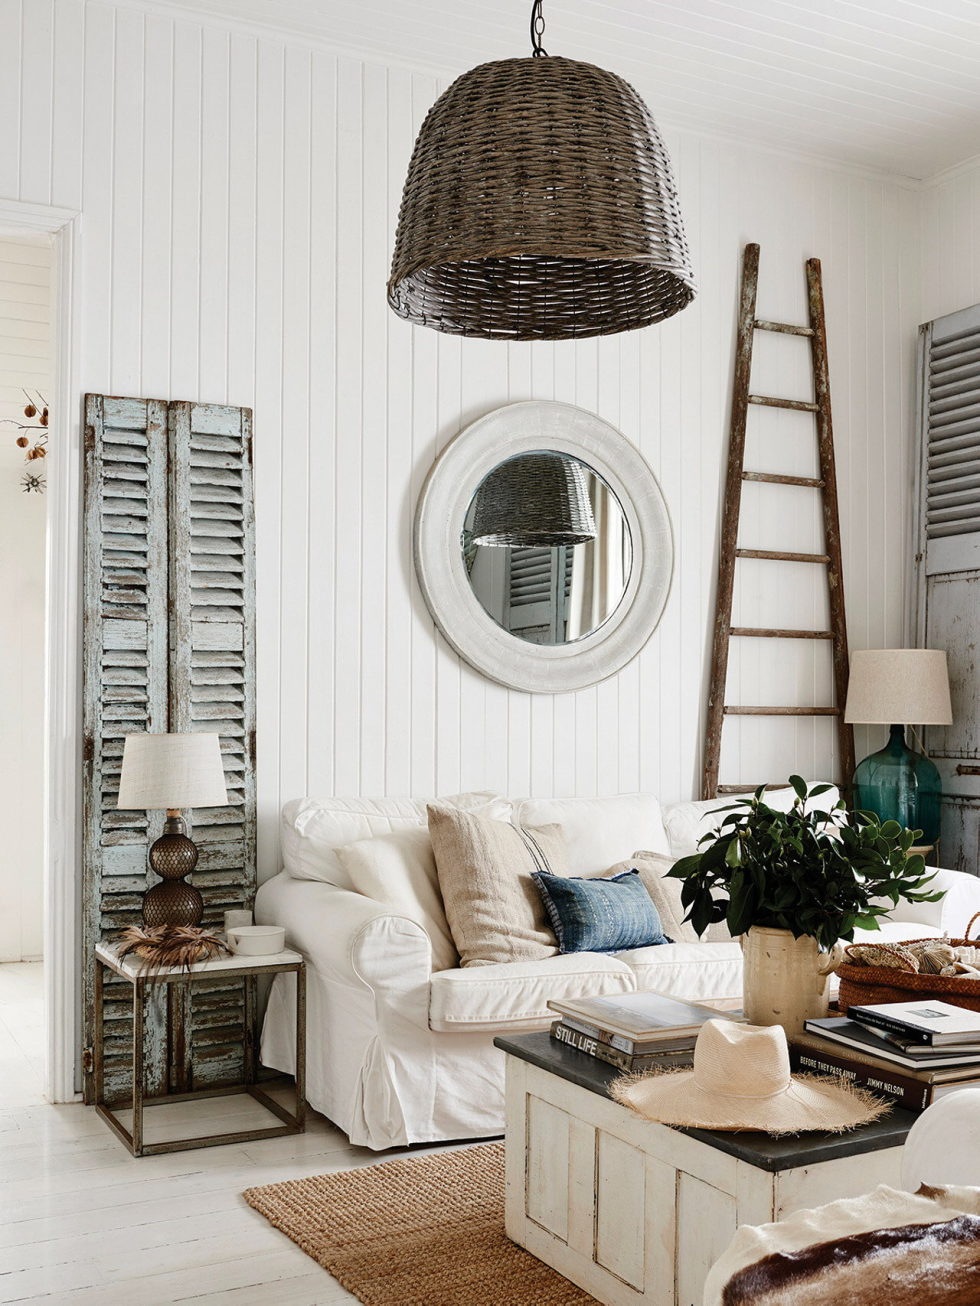 The photographer s house in brisbane - Casa chic roma ...